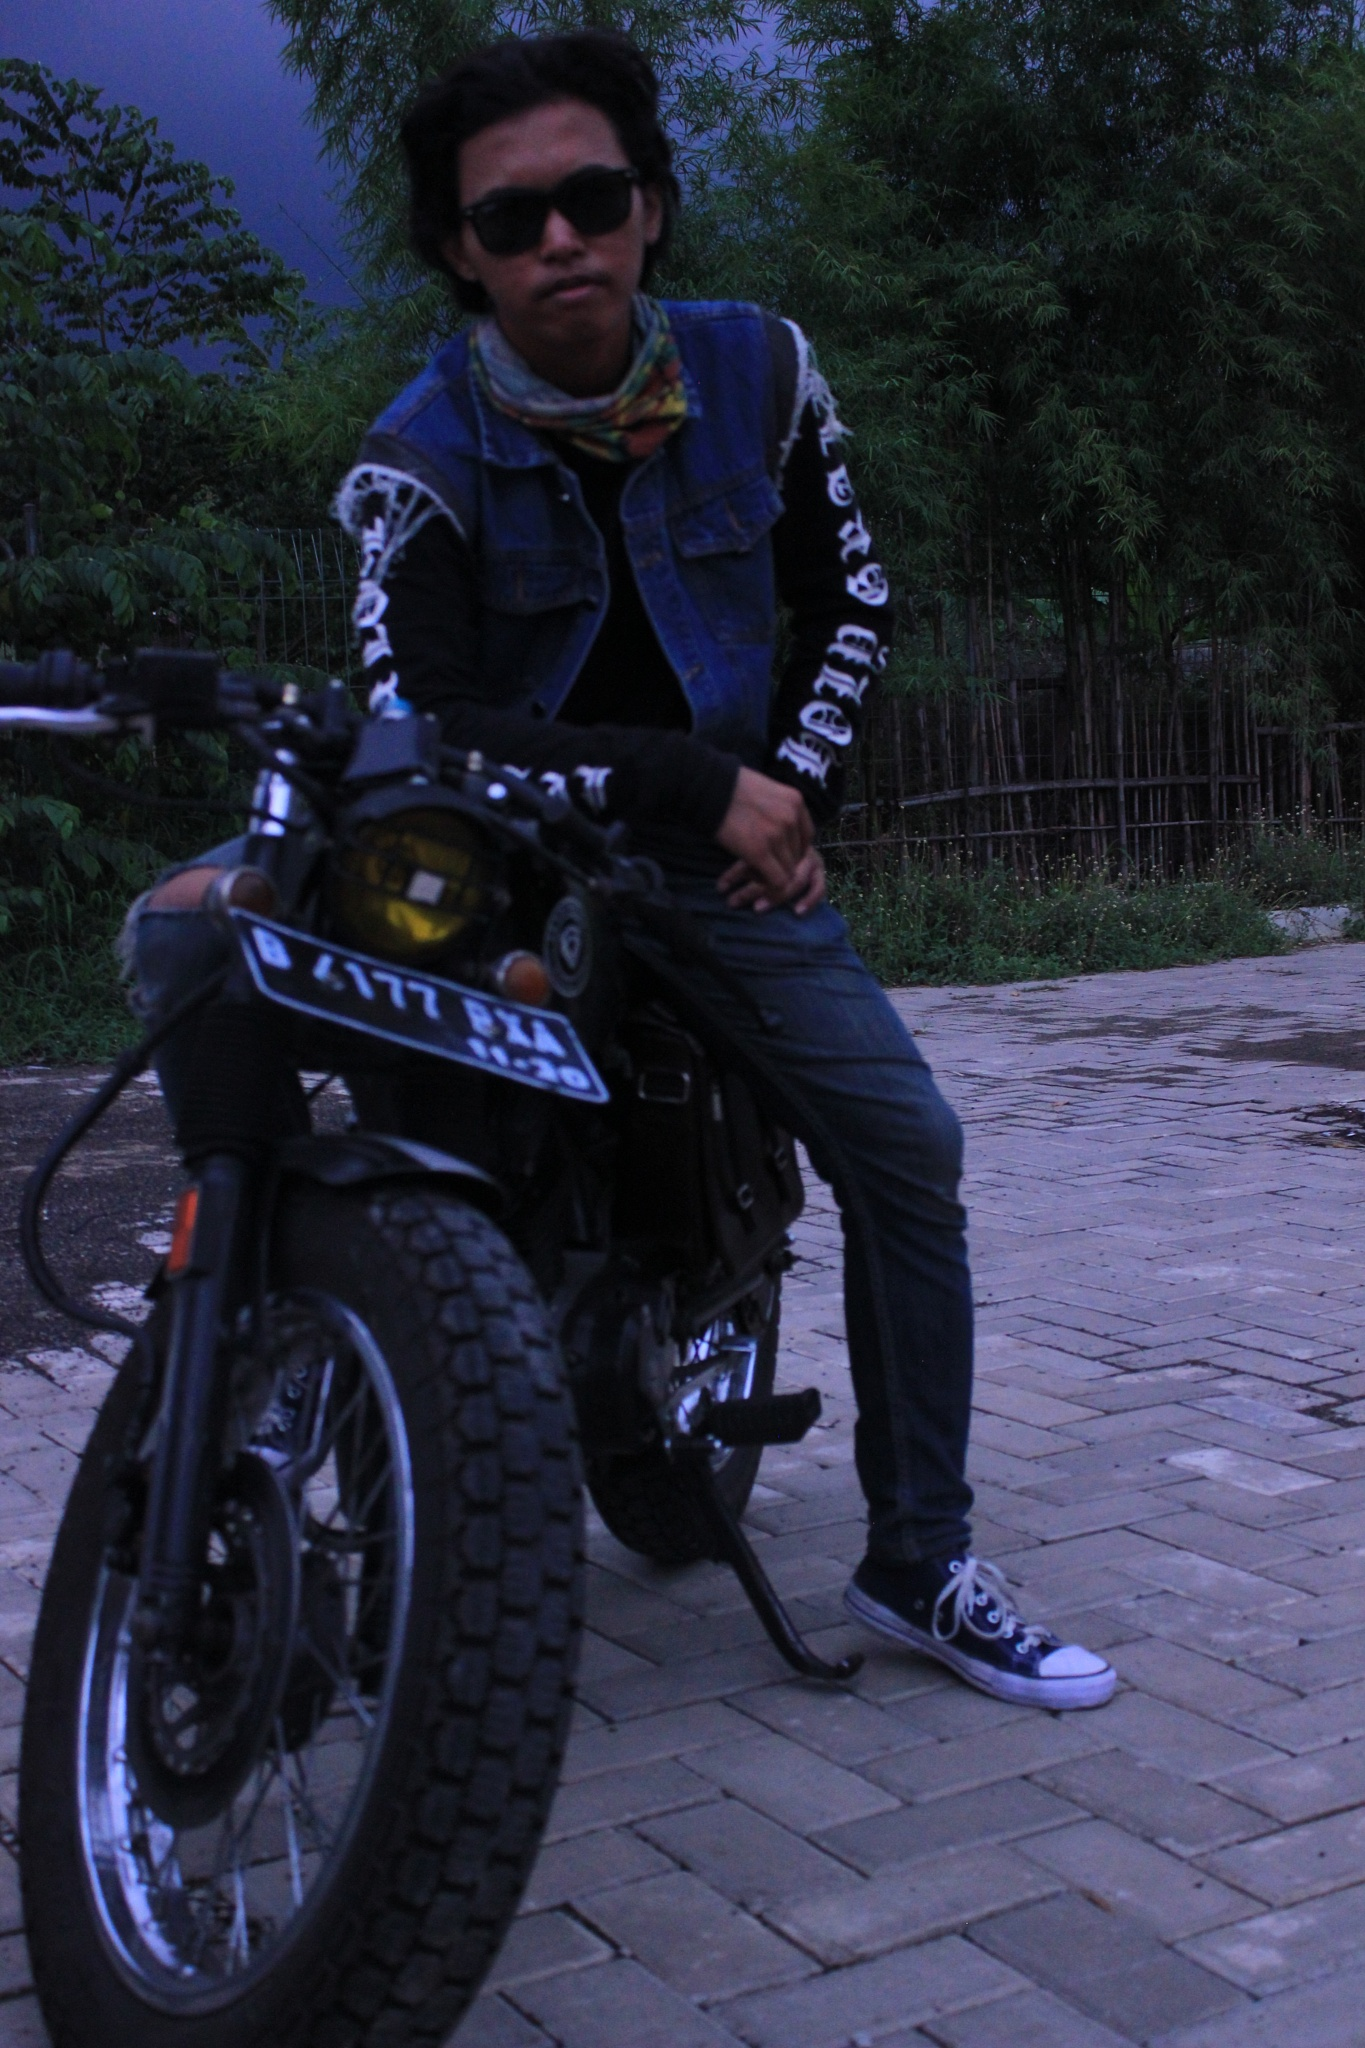 Rocker and Bike by Dwi Arya Saputra